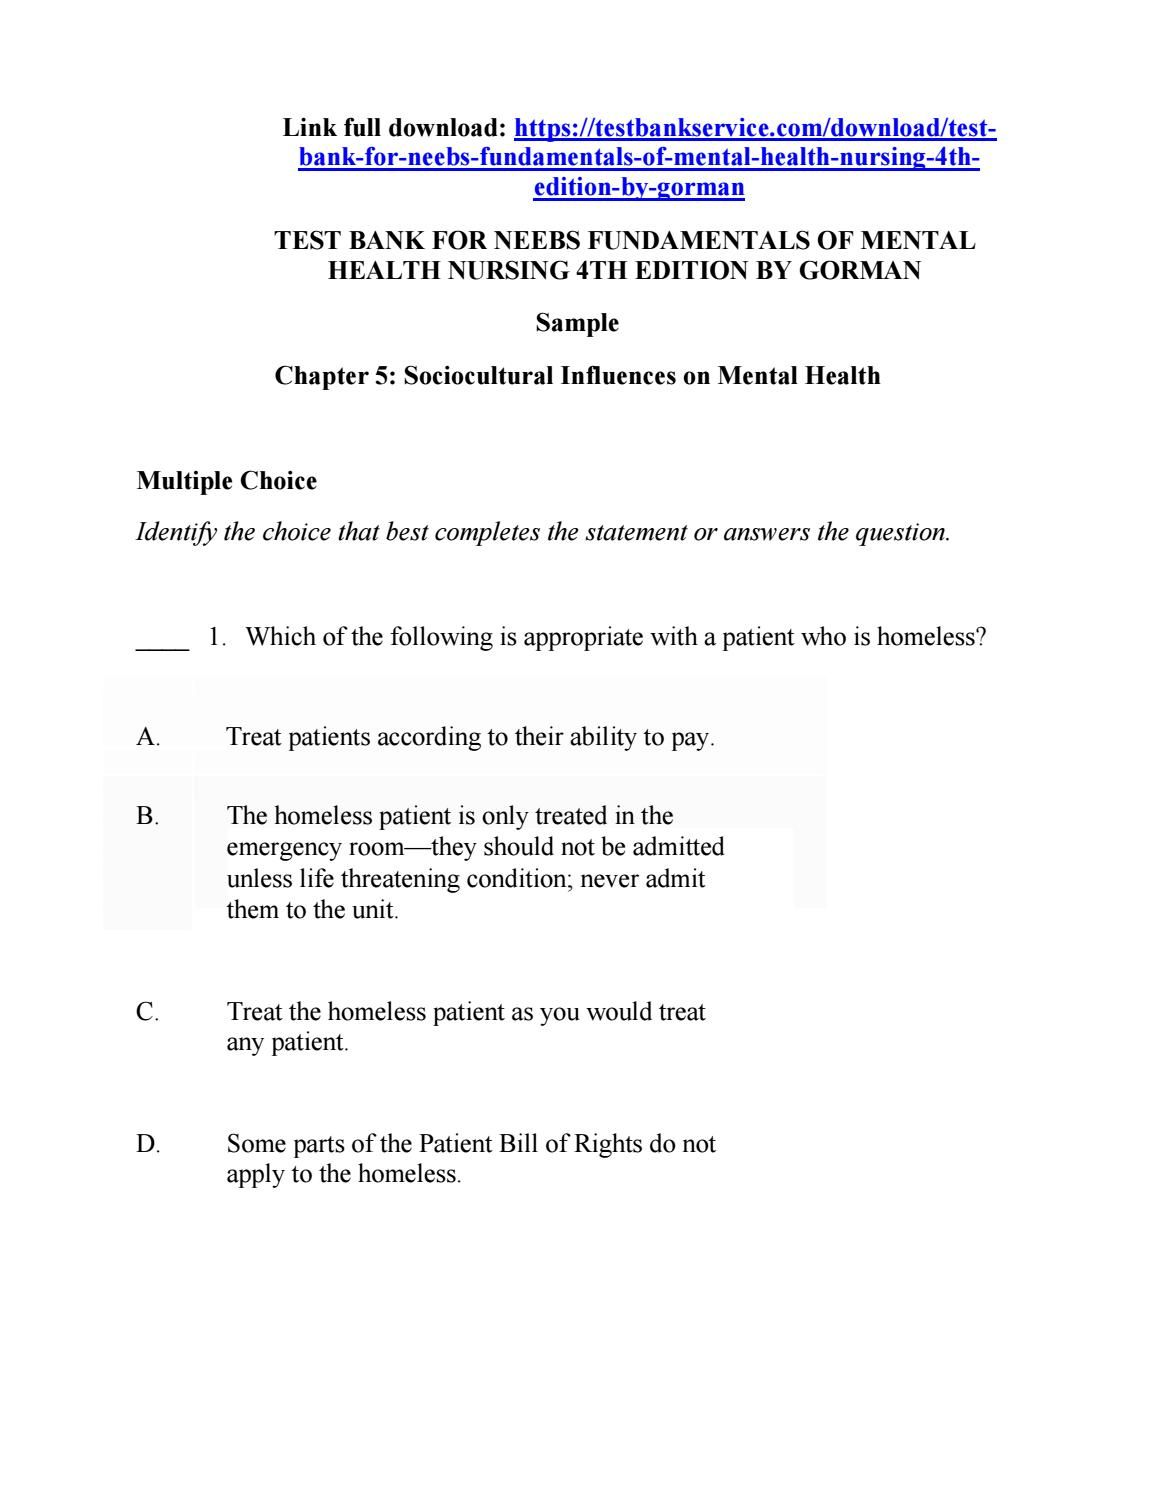 Test Bank For Neebs Fundamentals Of Mental Health Nursing 4th